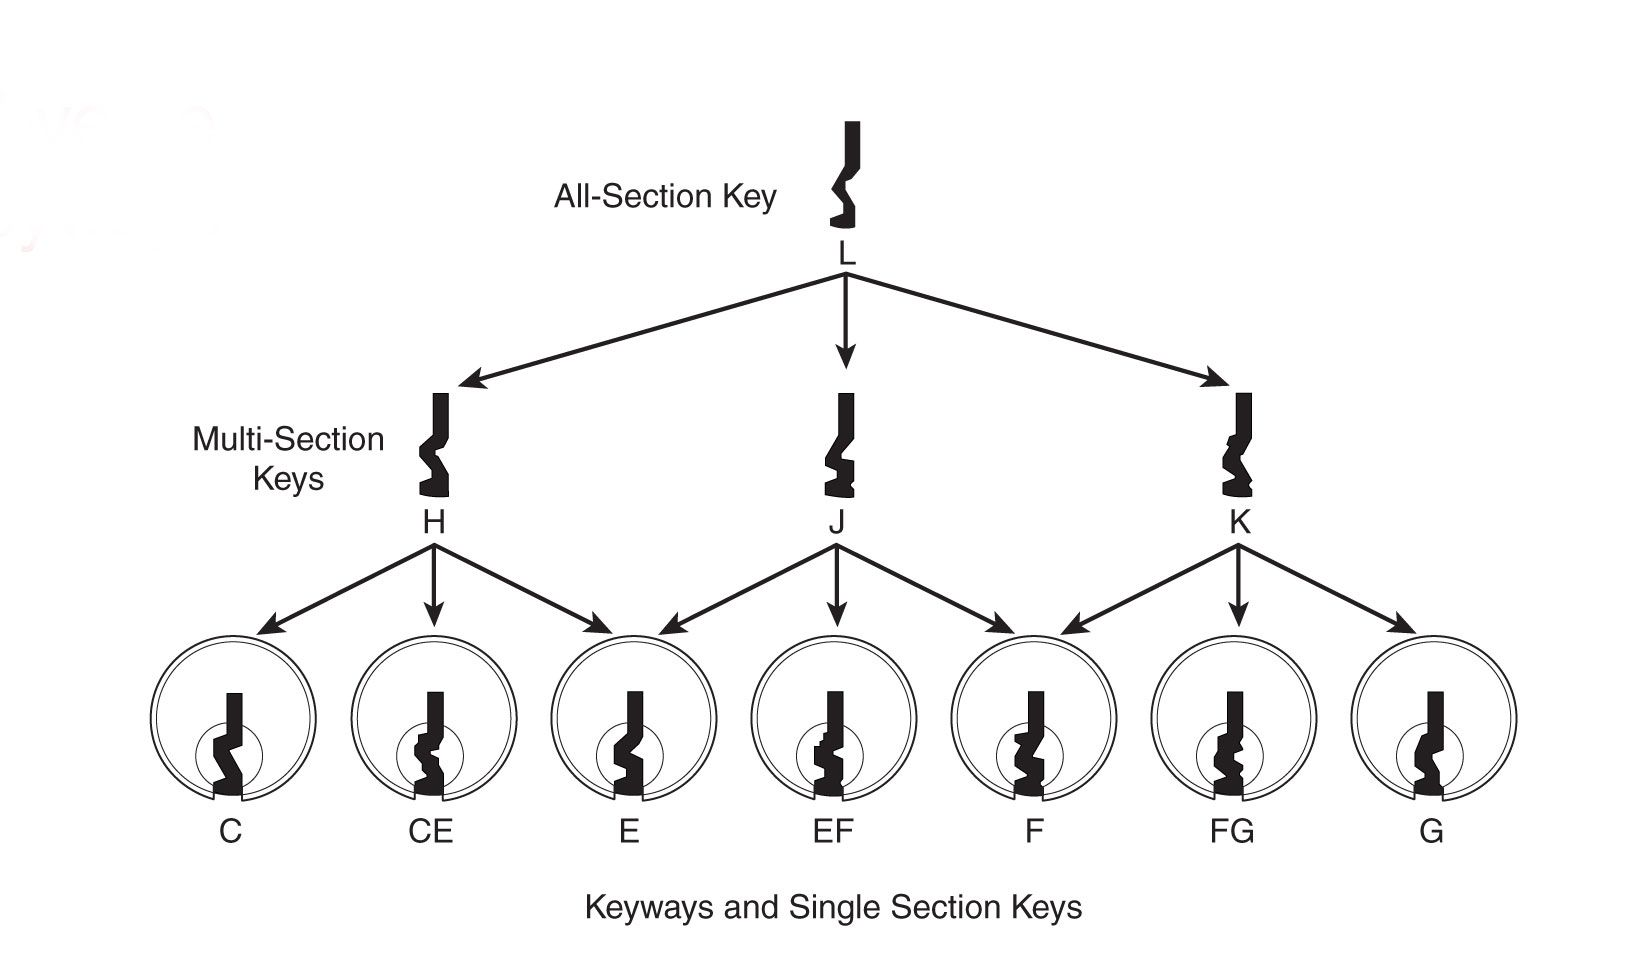 hight resolution of schlage classic keyways and single section keys diagram mr locksmith